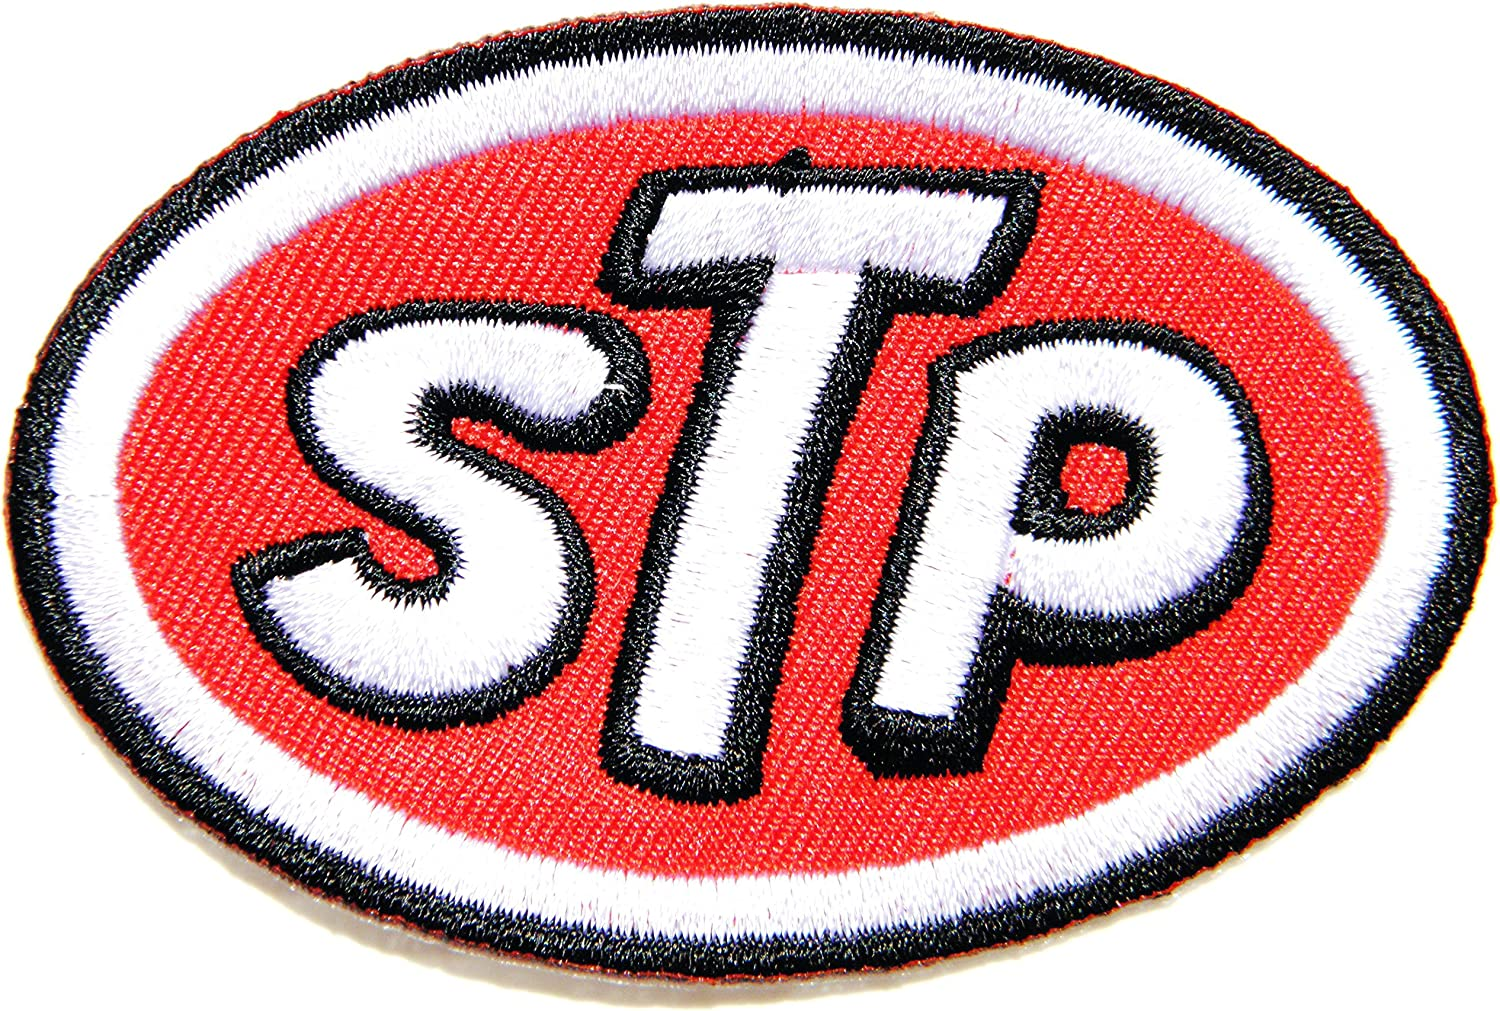 Racing Team embroidered cloth patch.